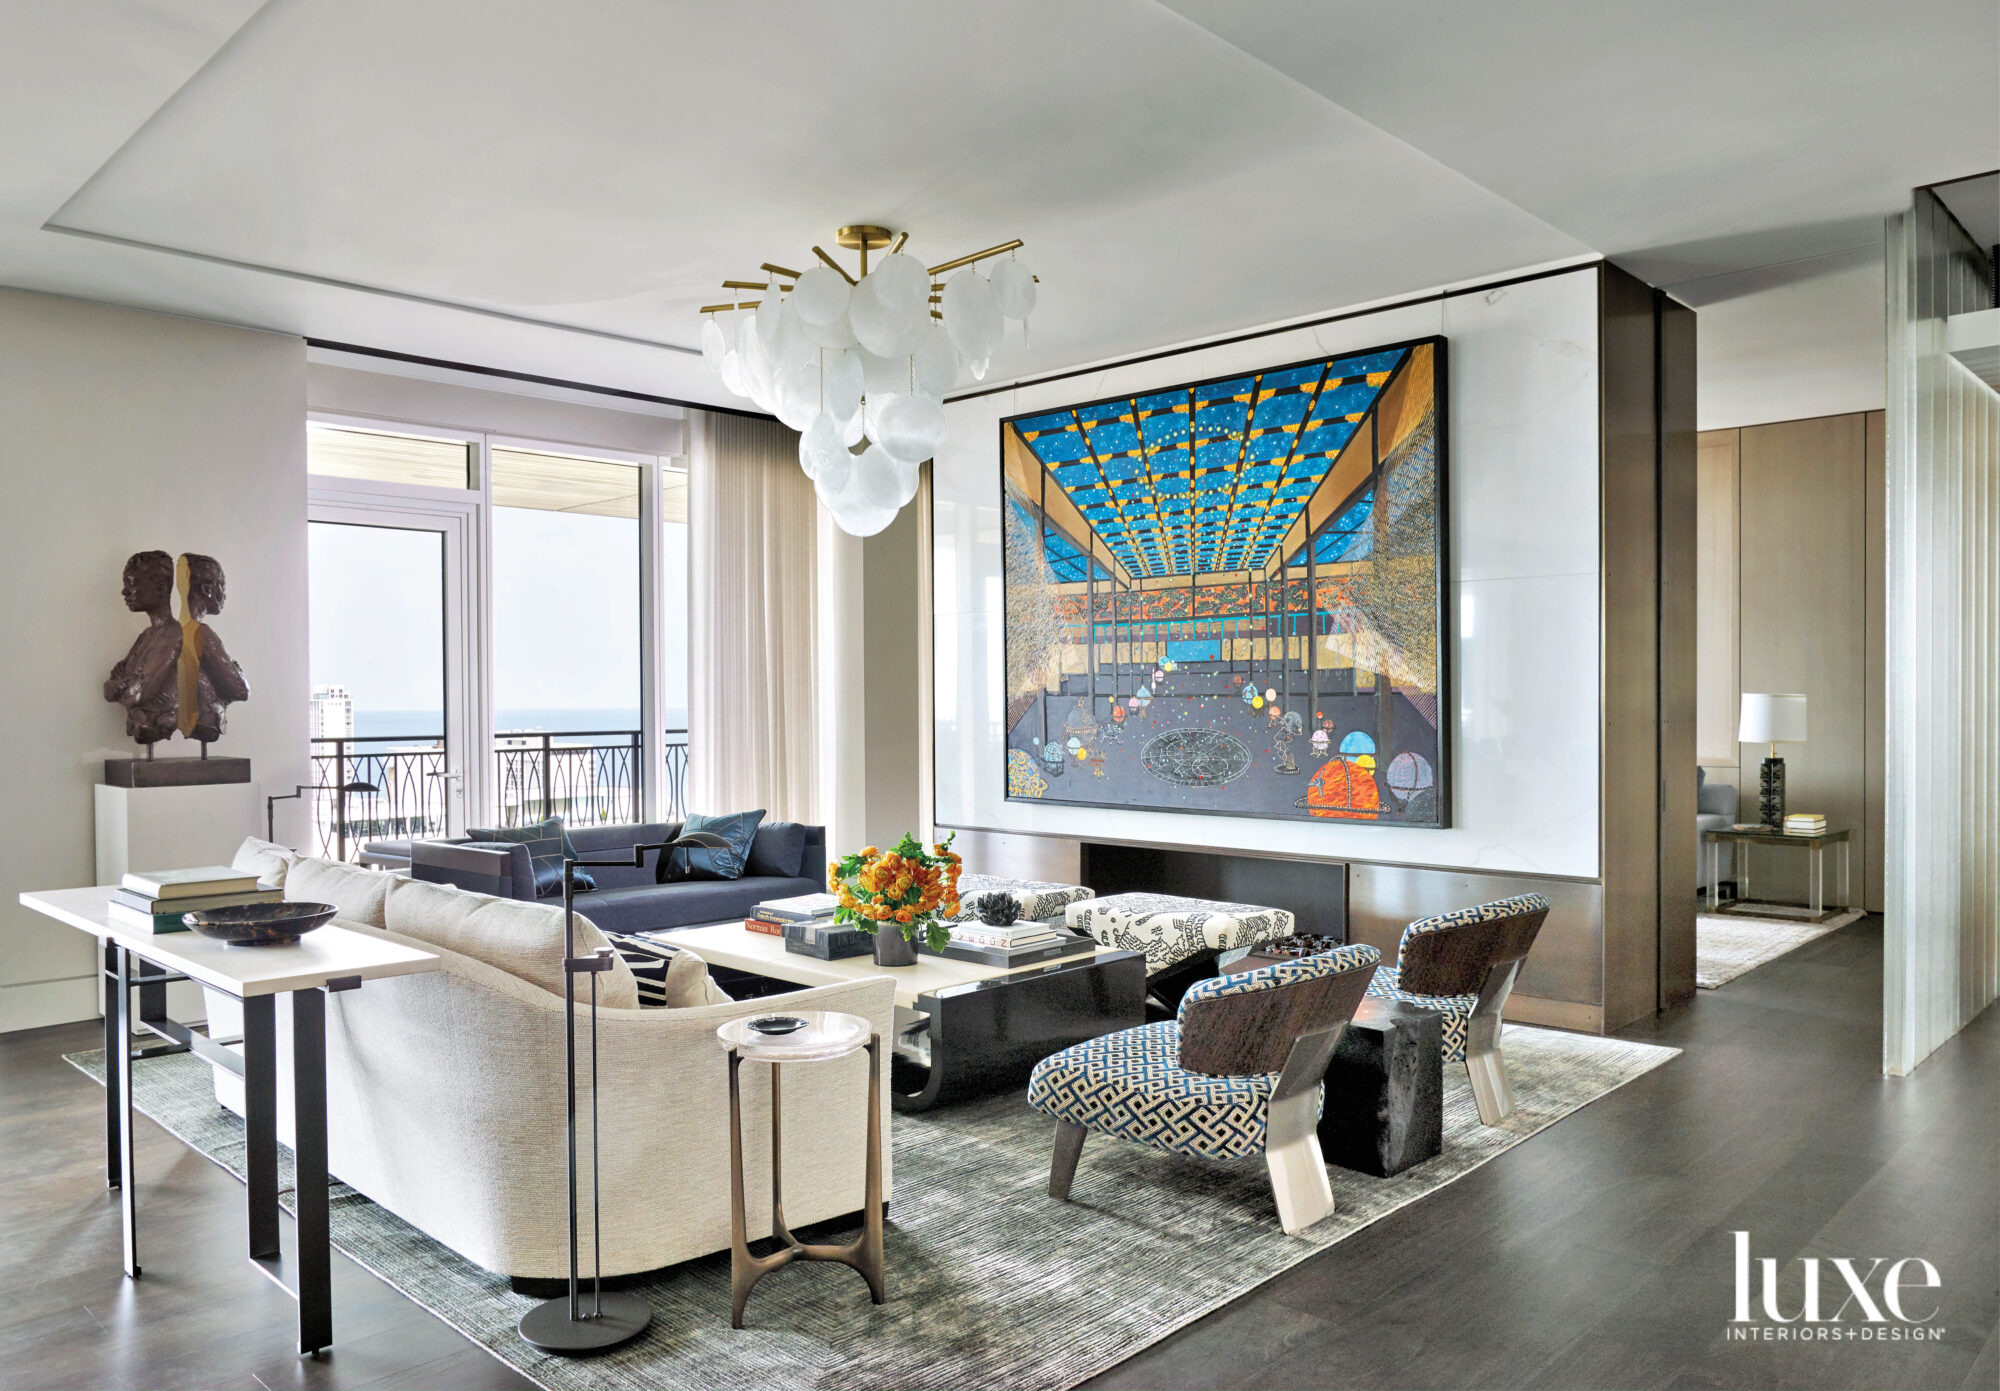 A living room with black-and-white furniture and a large colorful painting over the fireplace.